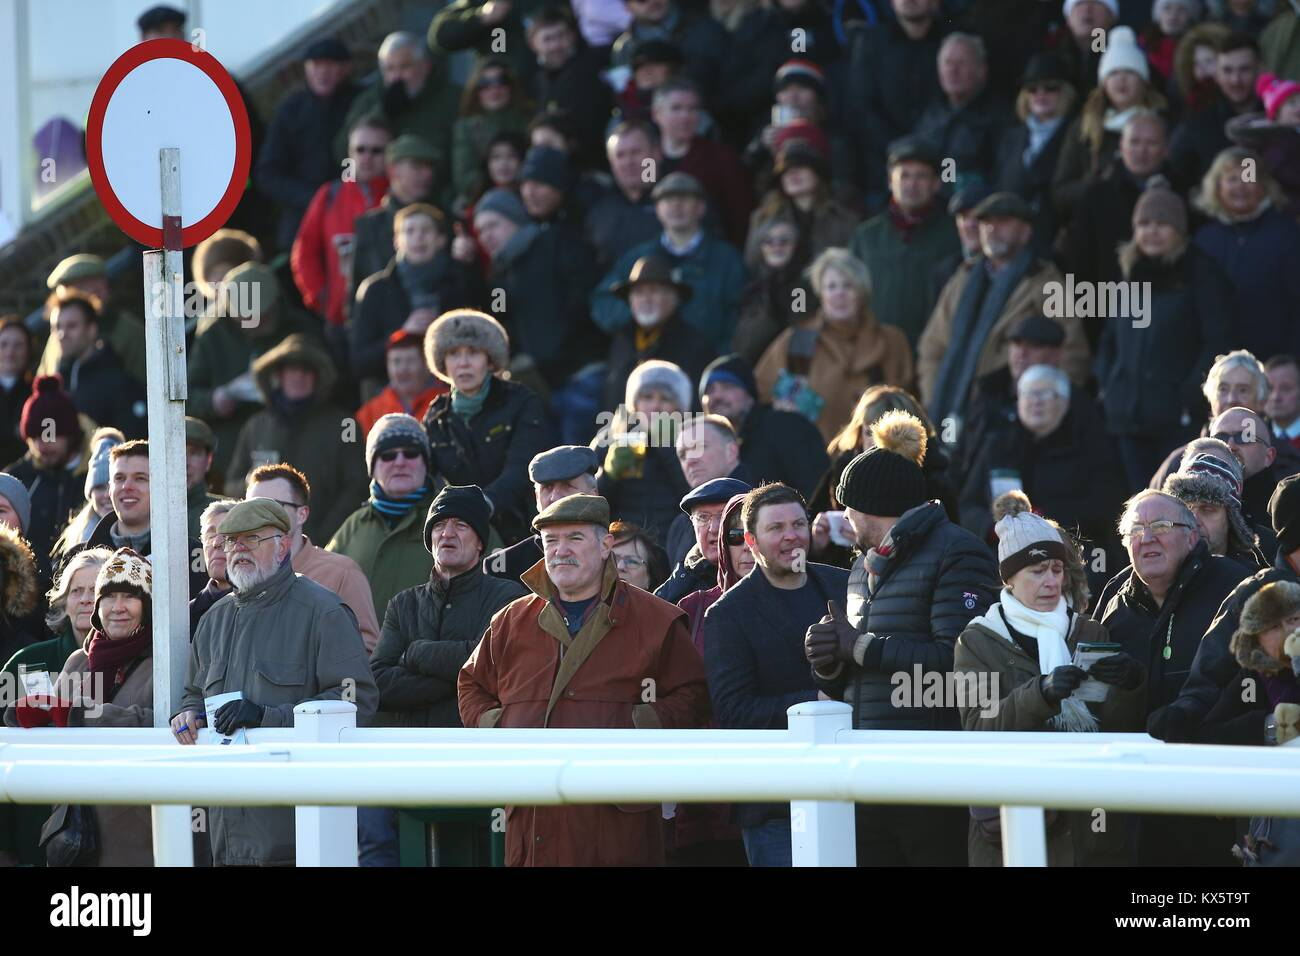 Spectators at the Finish Post at Plumpton Race Course  in Sussex UK. - Stock Image